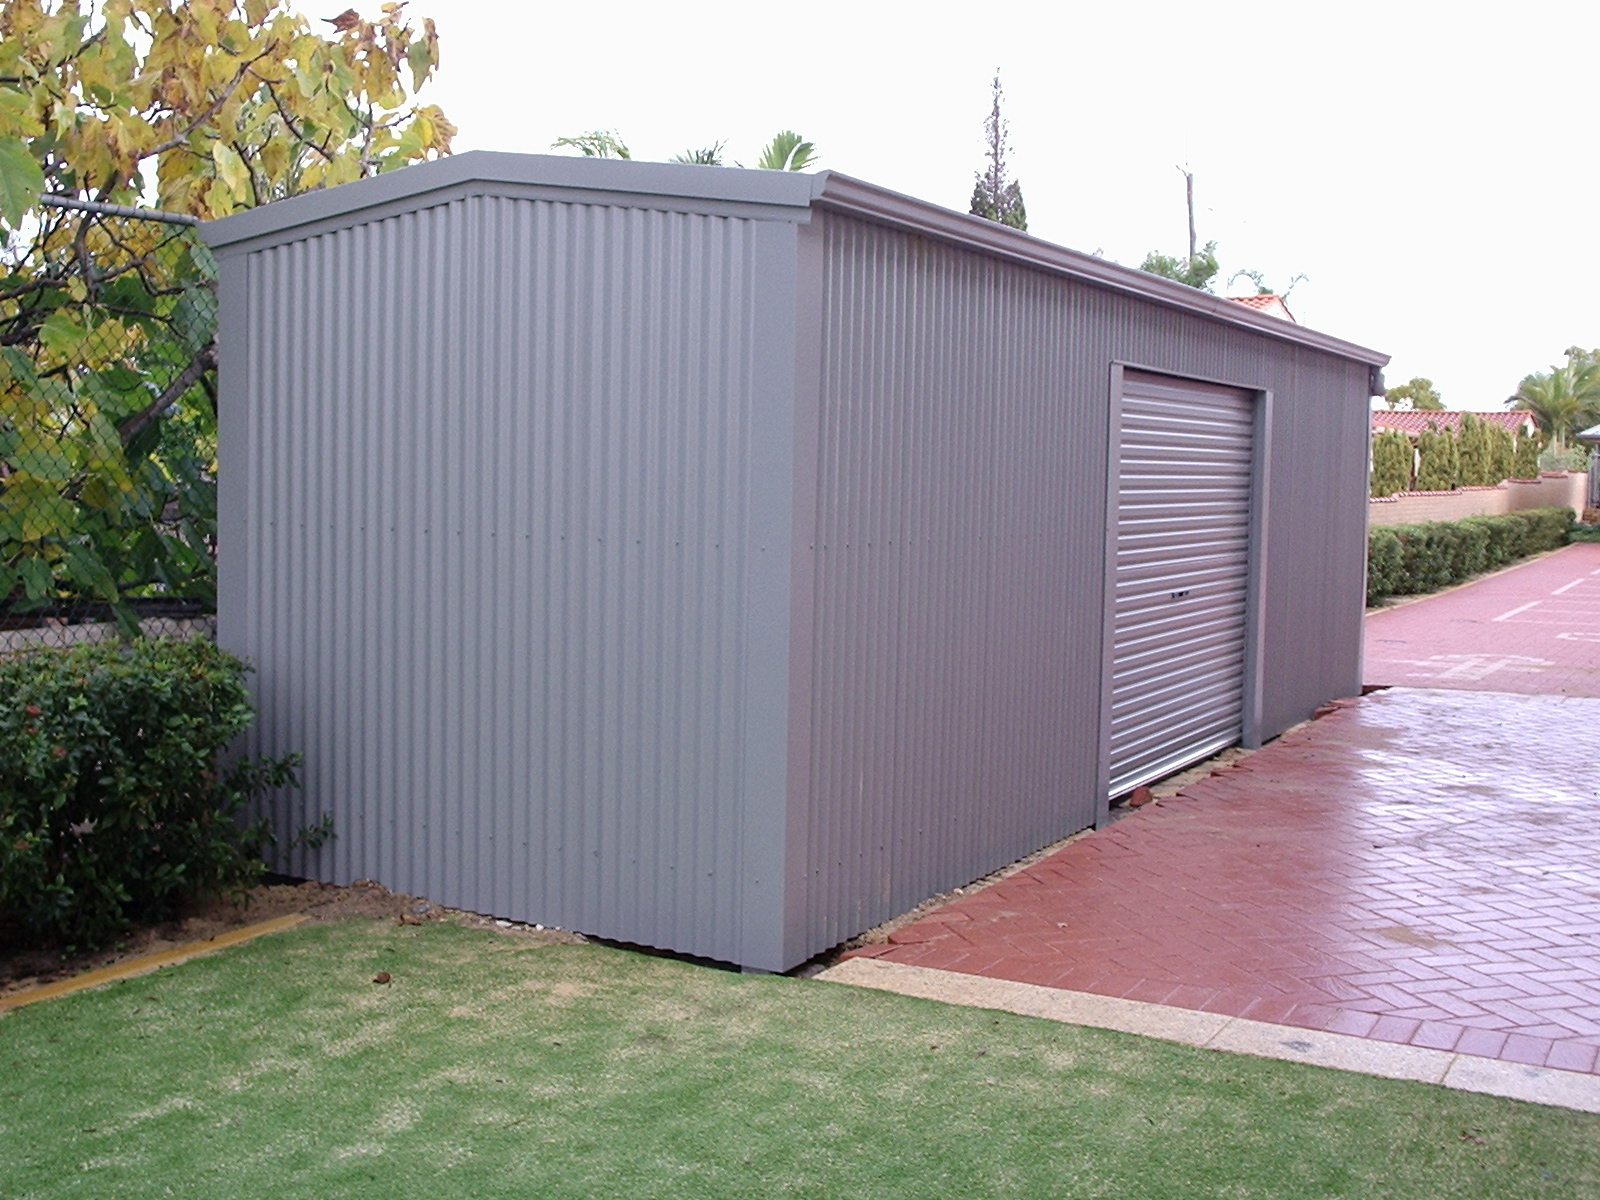 Choosing the right size for your shed nwsm for Garden shed perth